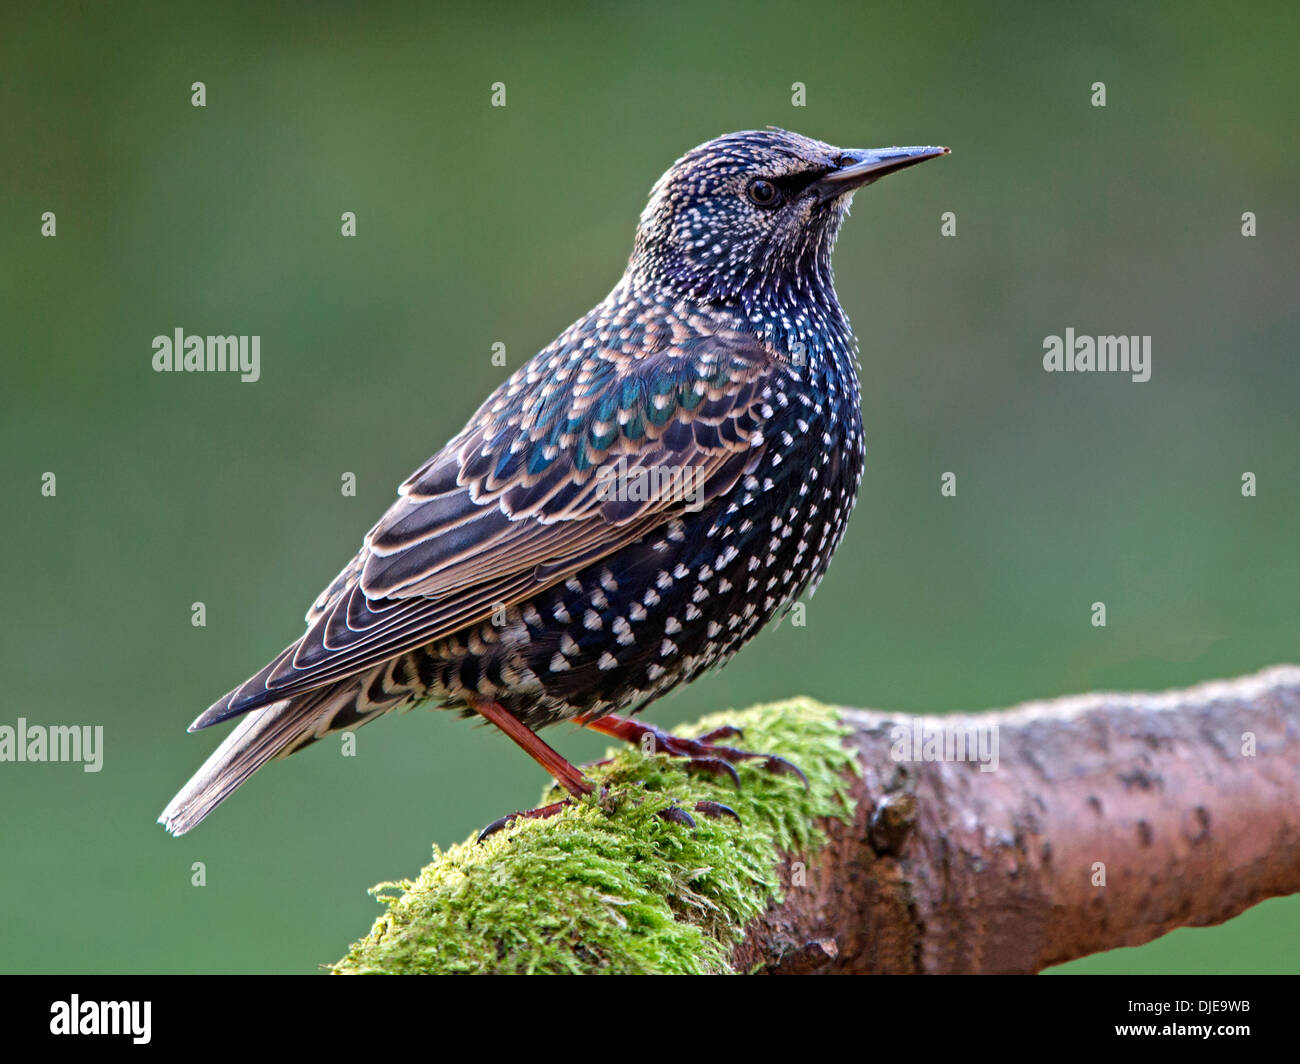 Starling perched on branch - Stock Image